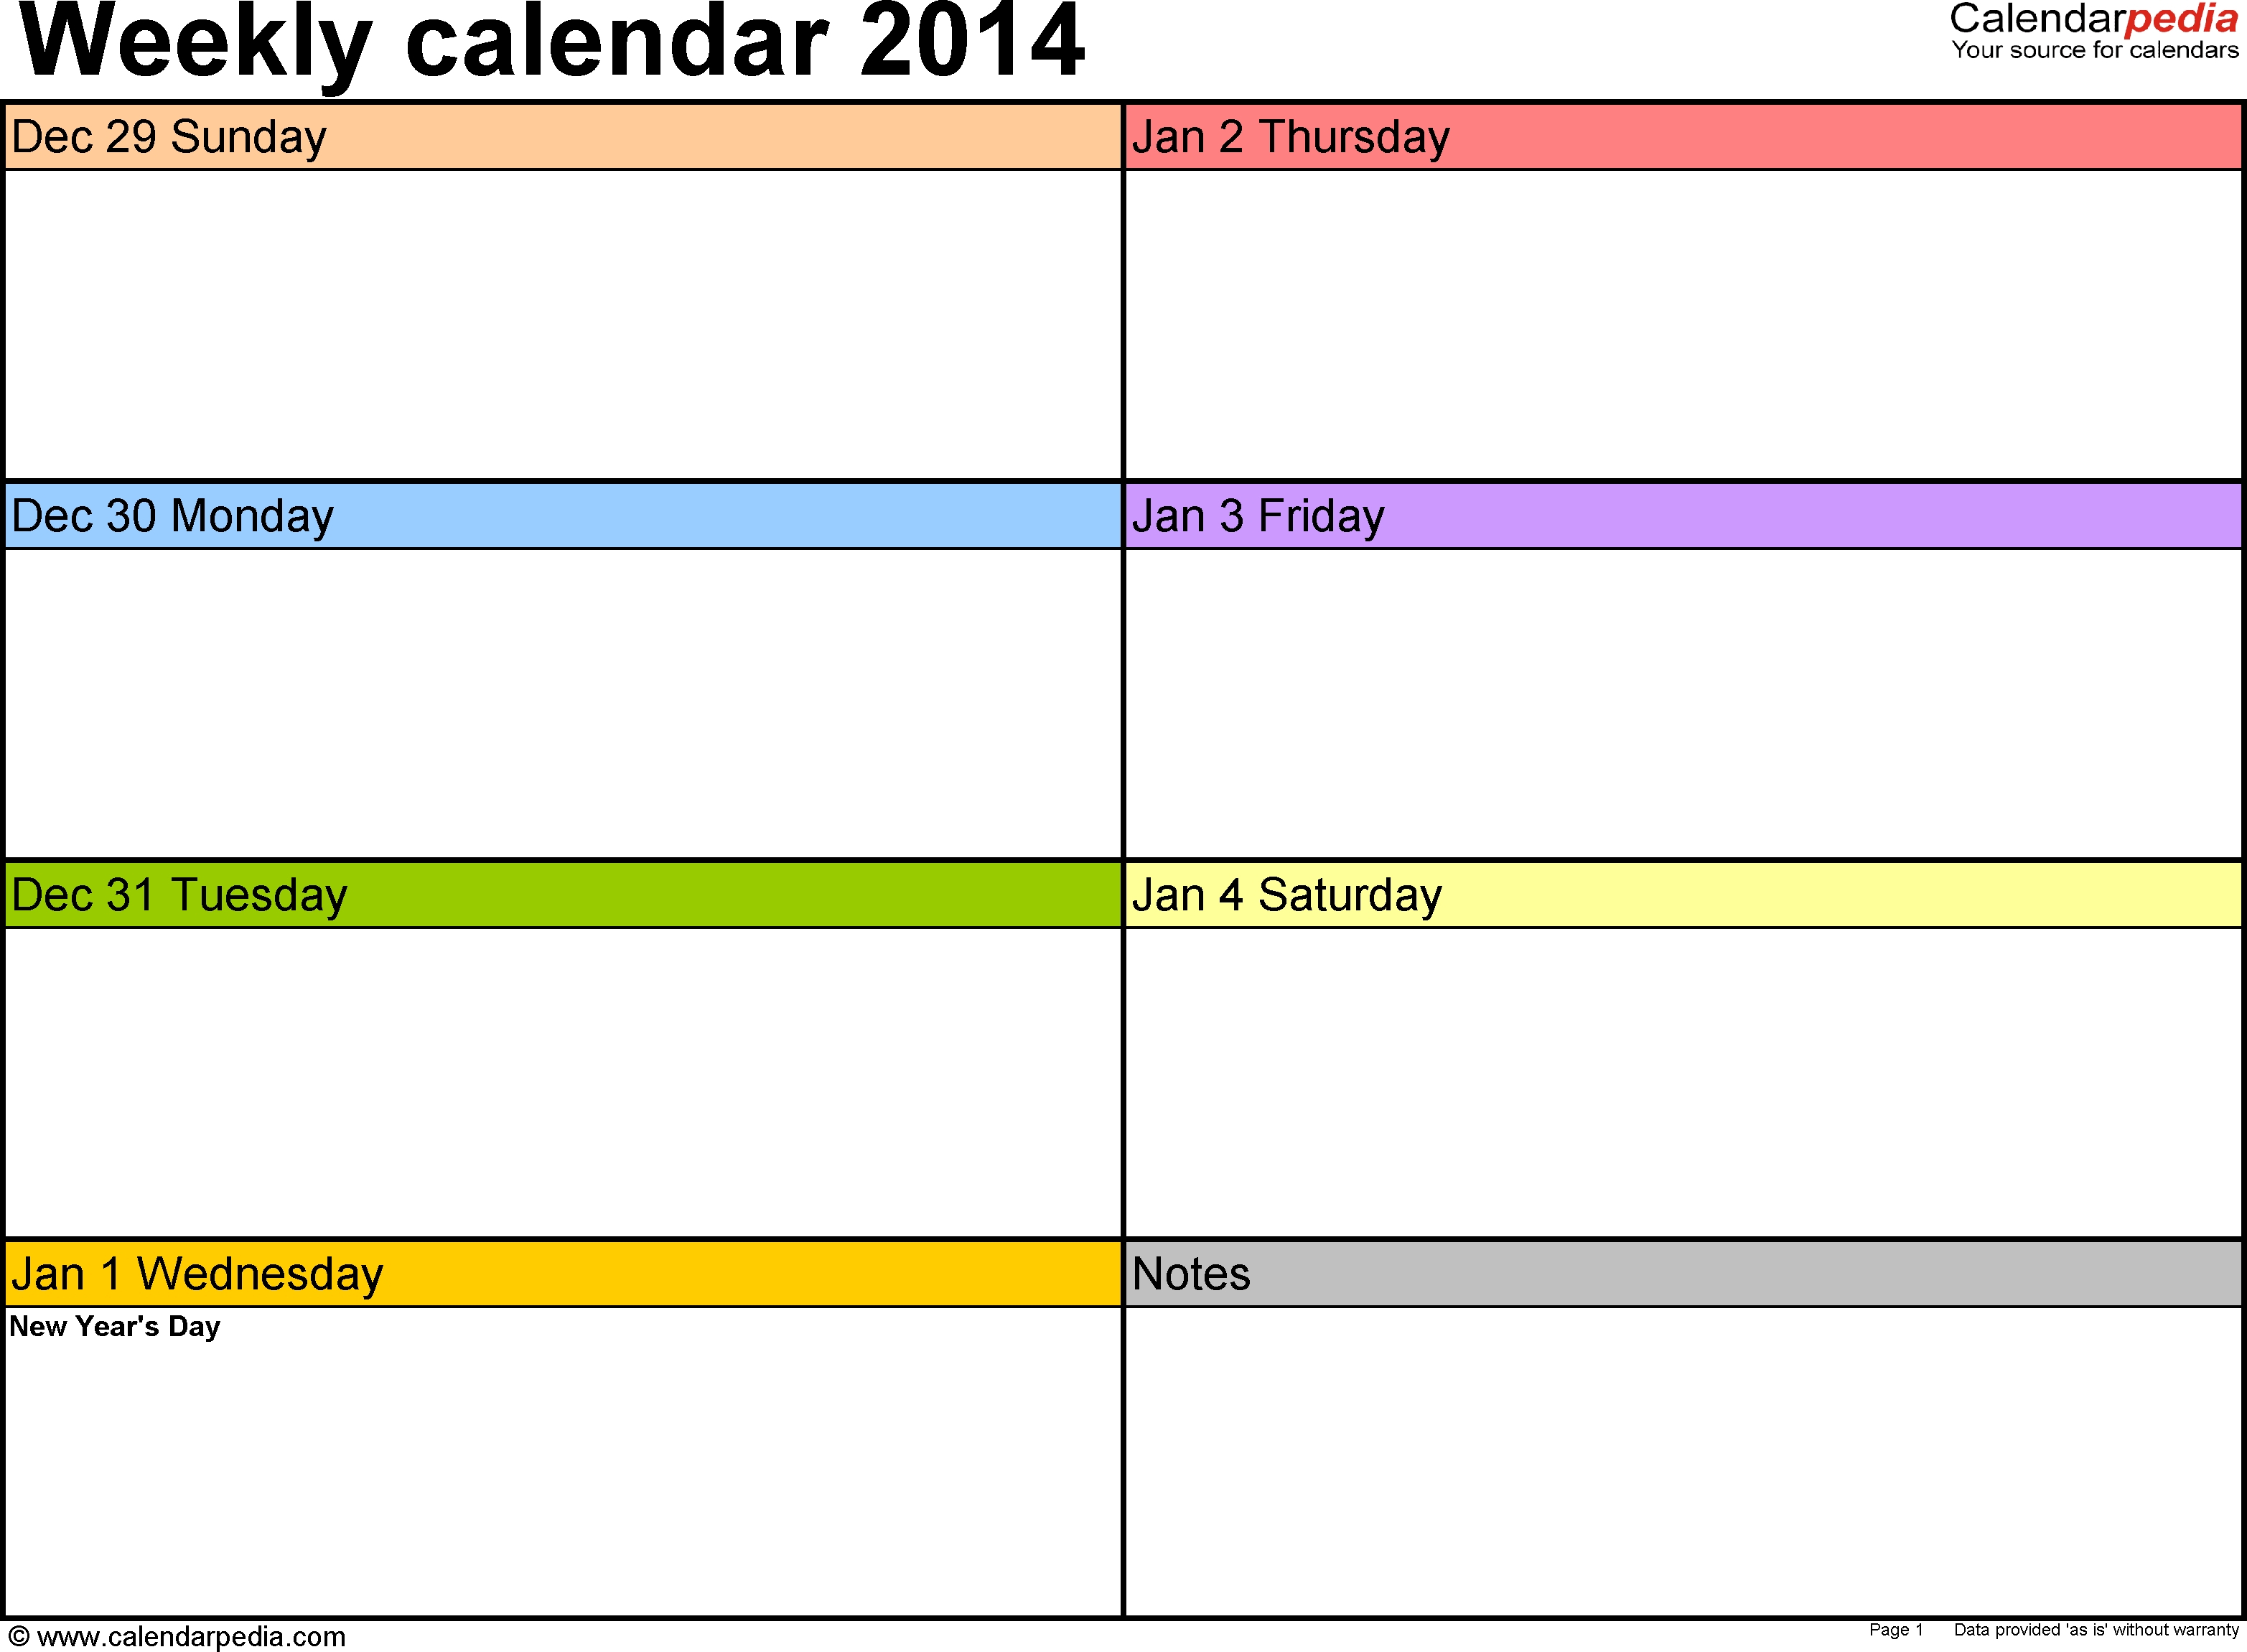 Printable Calendar Template Week Day Only Holidays Weekday Weekly regarding Printable Calendar Template Week Day Only